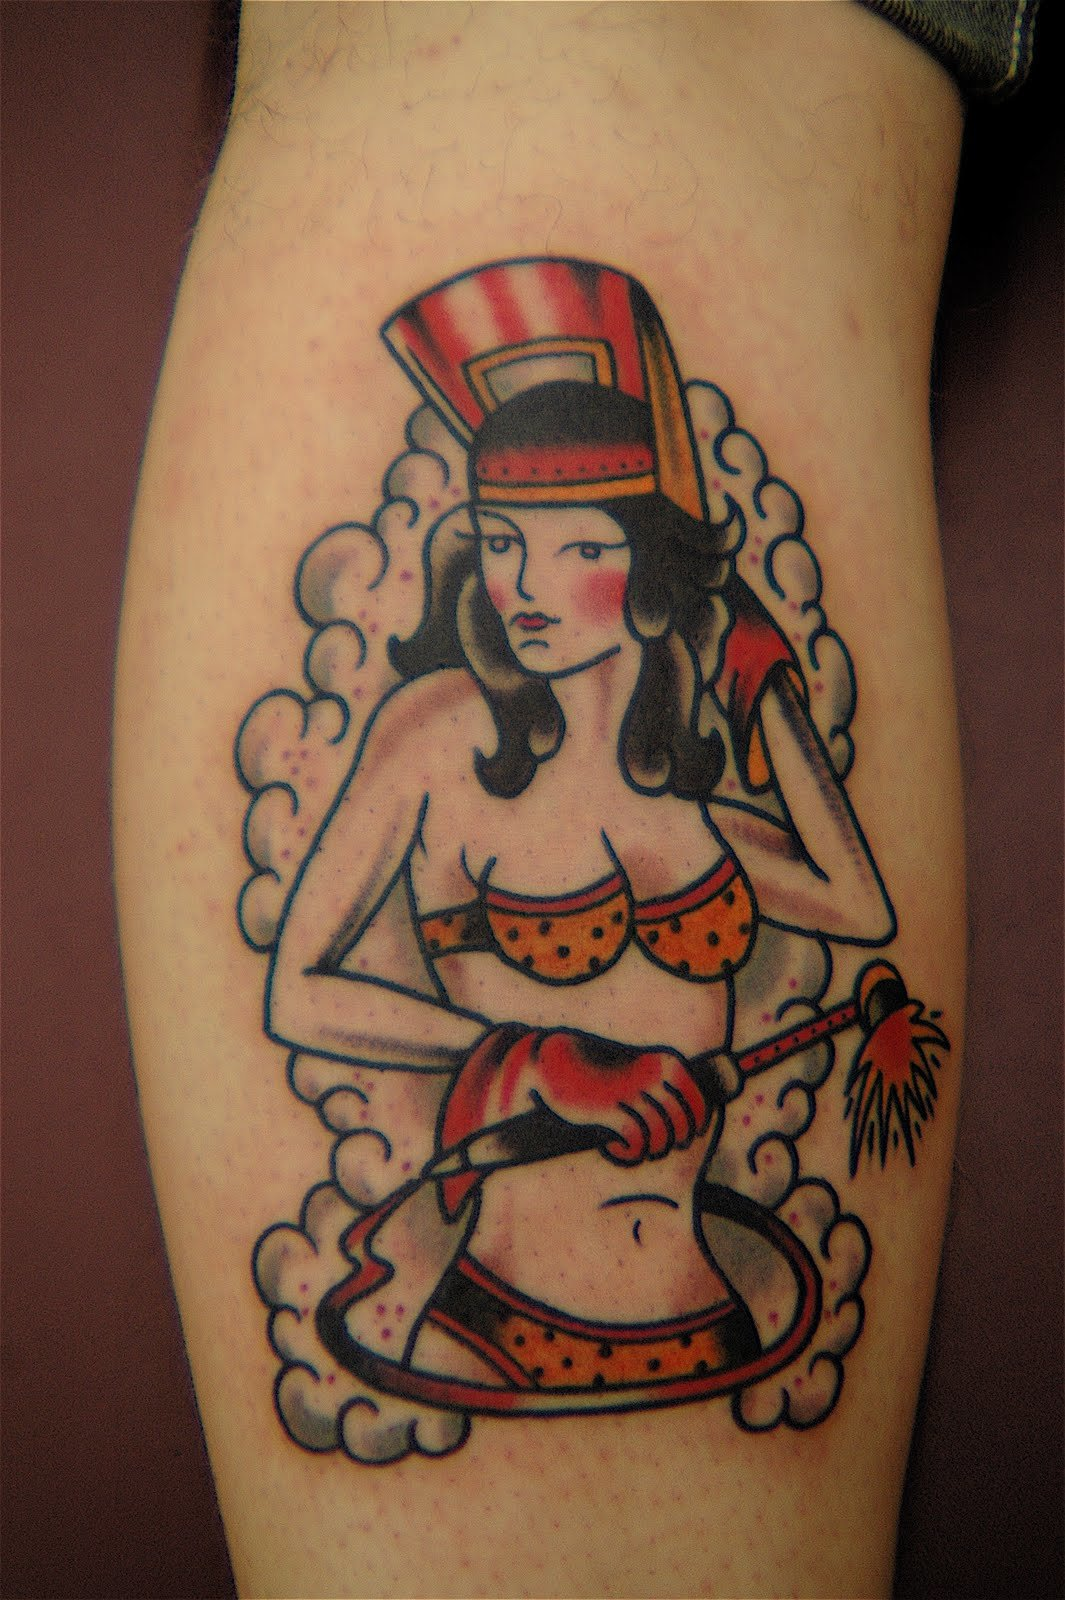 With pin up girl tattoo coles